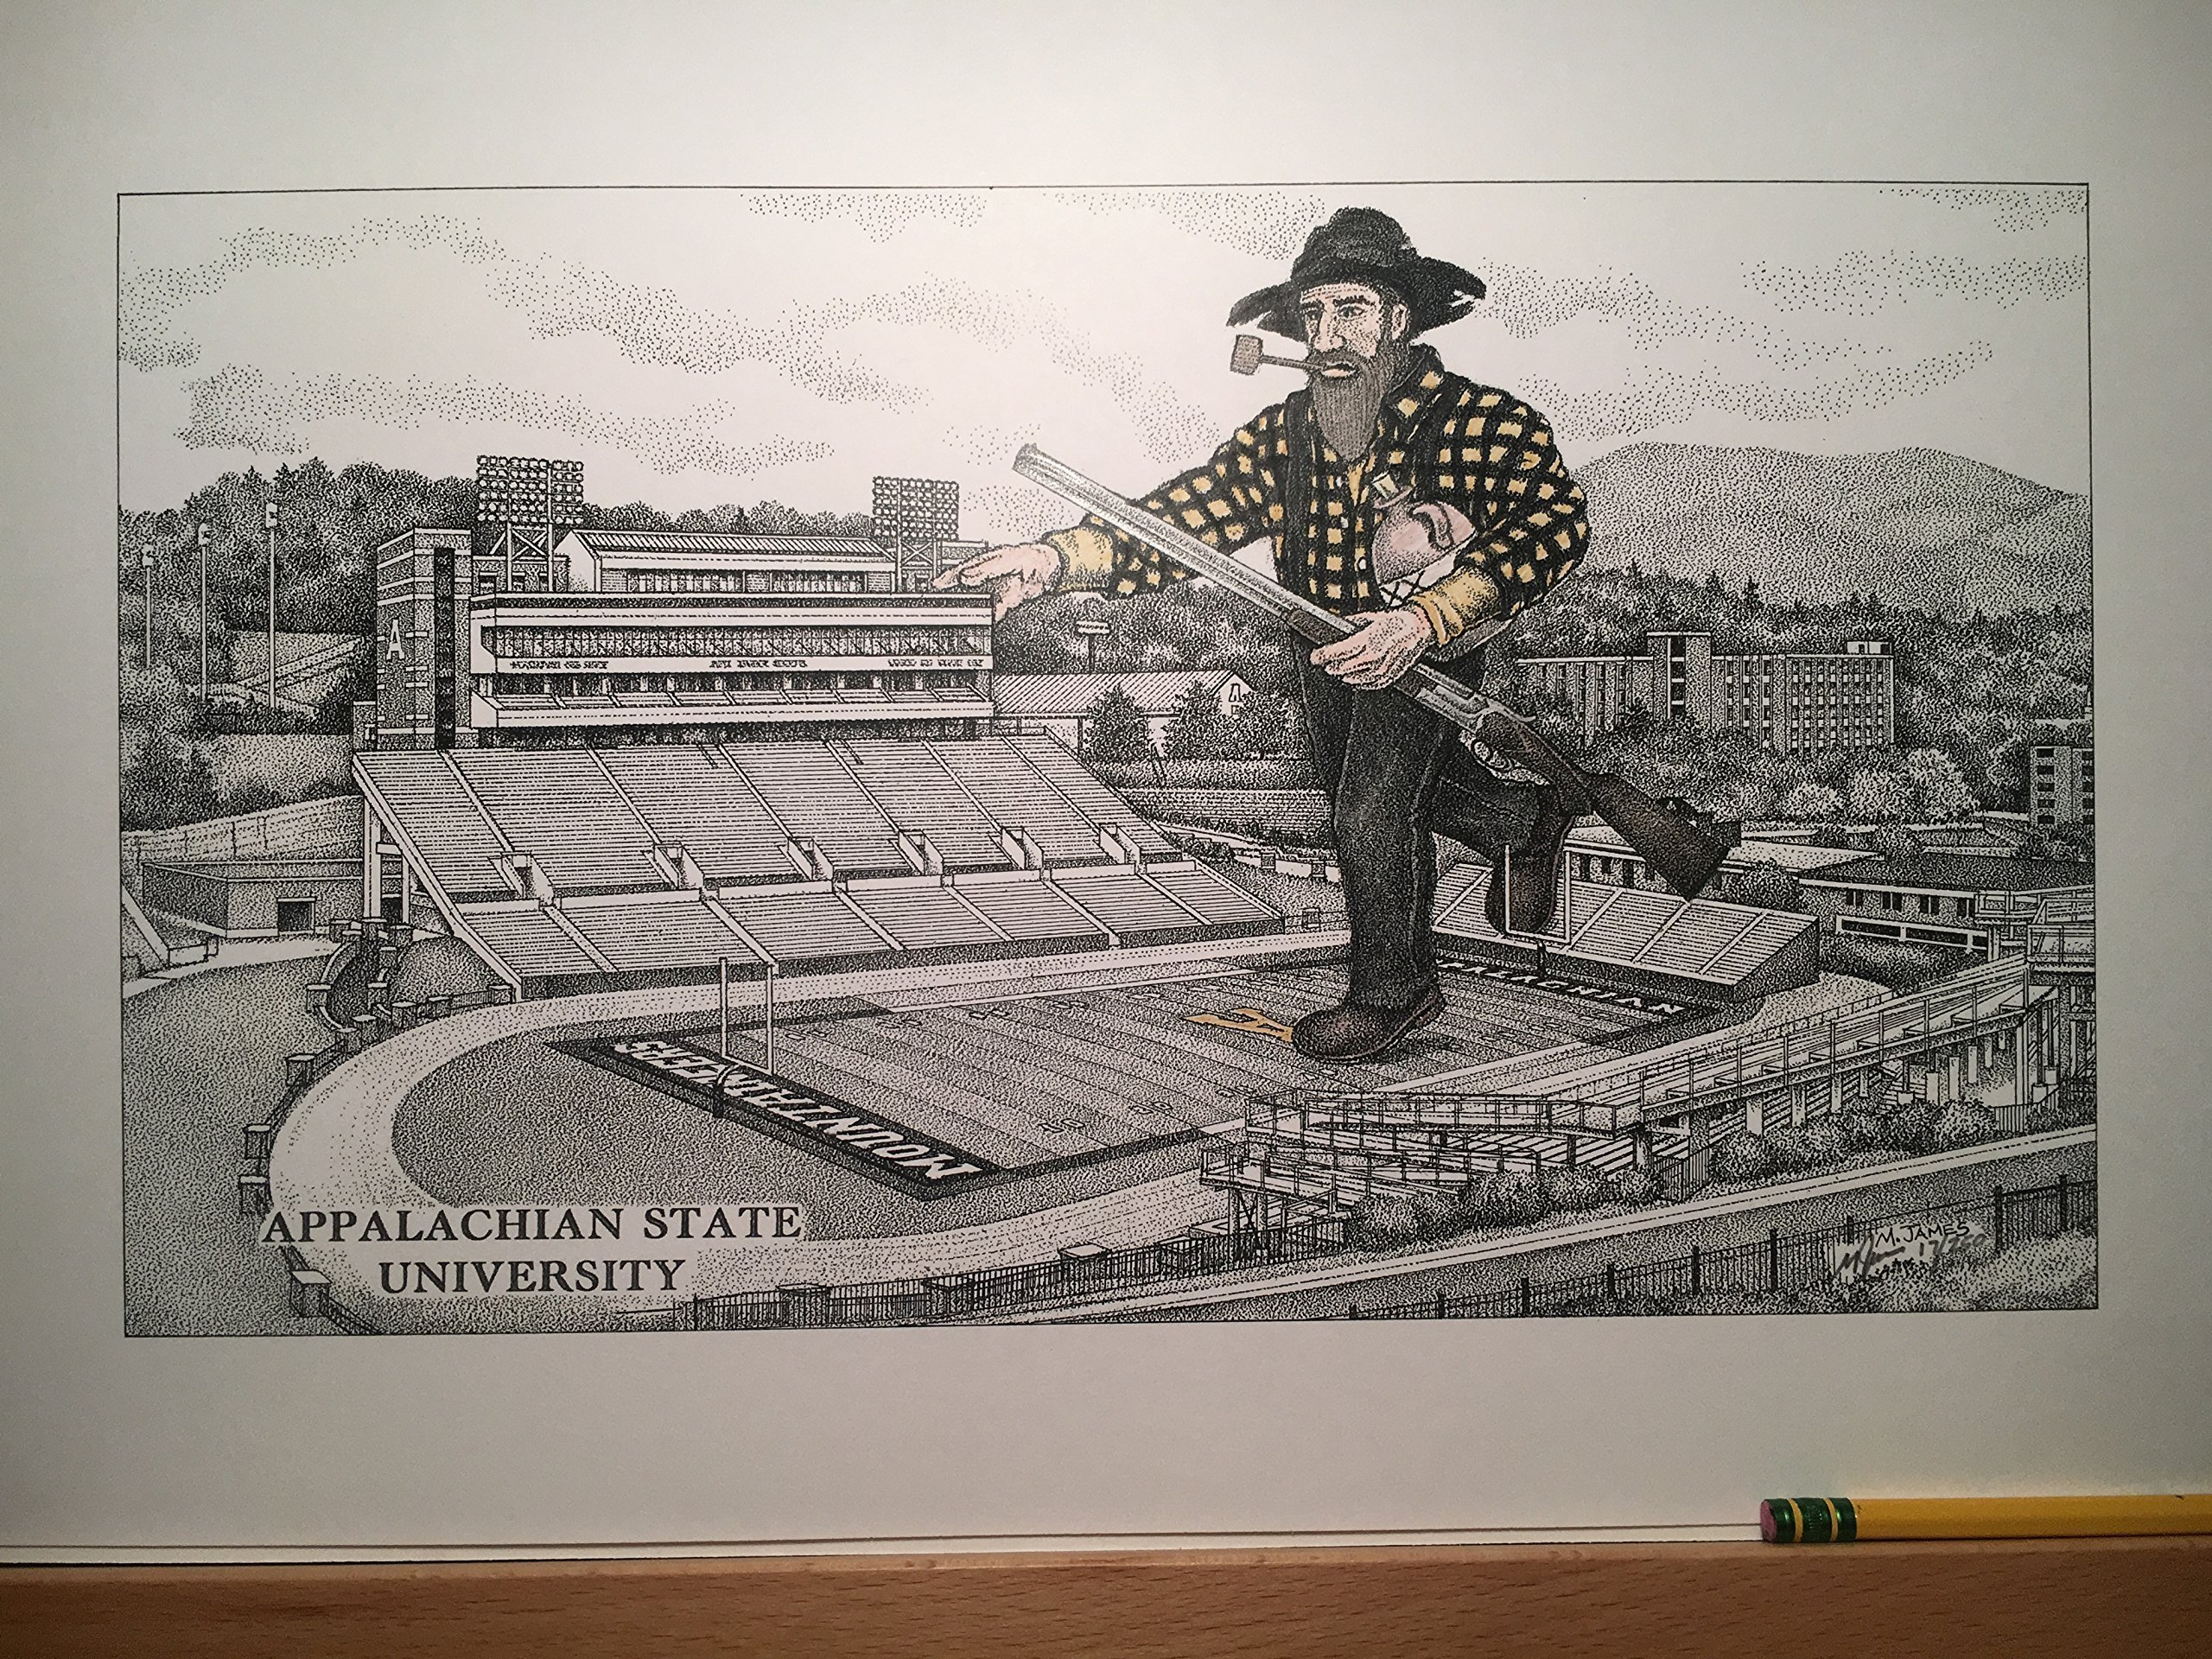 Appalachian State football stadium with mountaineer; pen and ink print from hand-drawn original